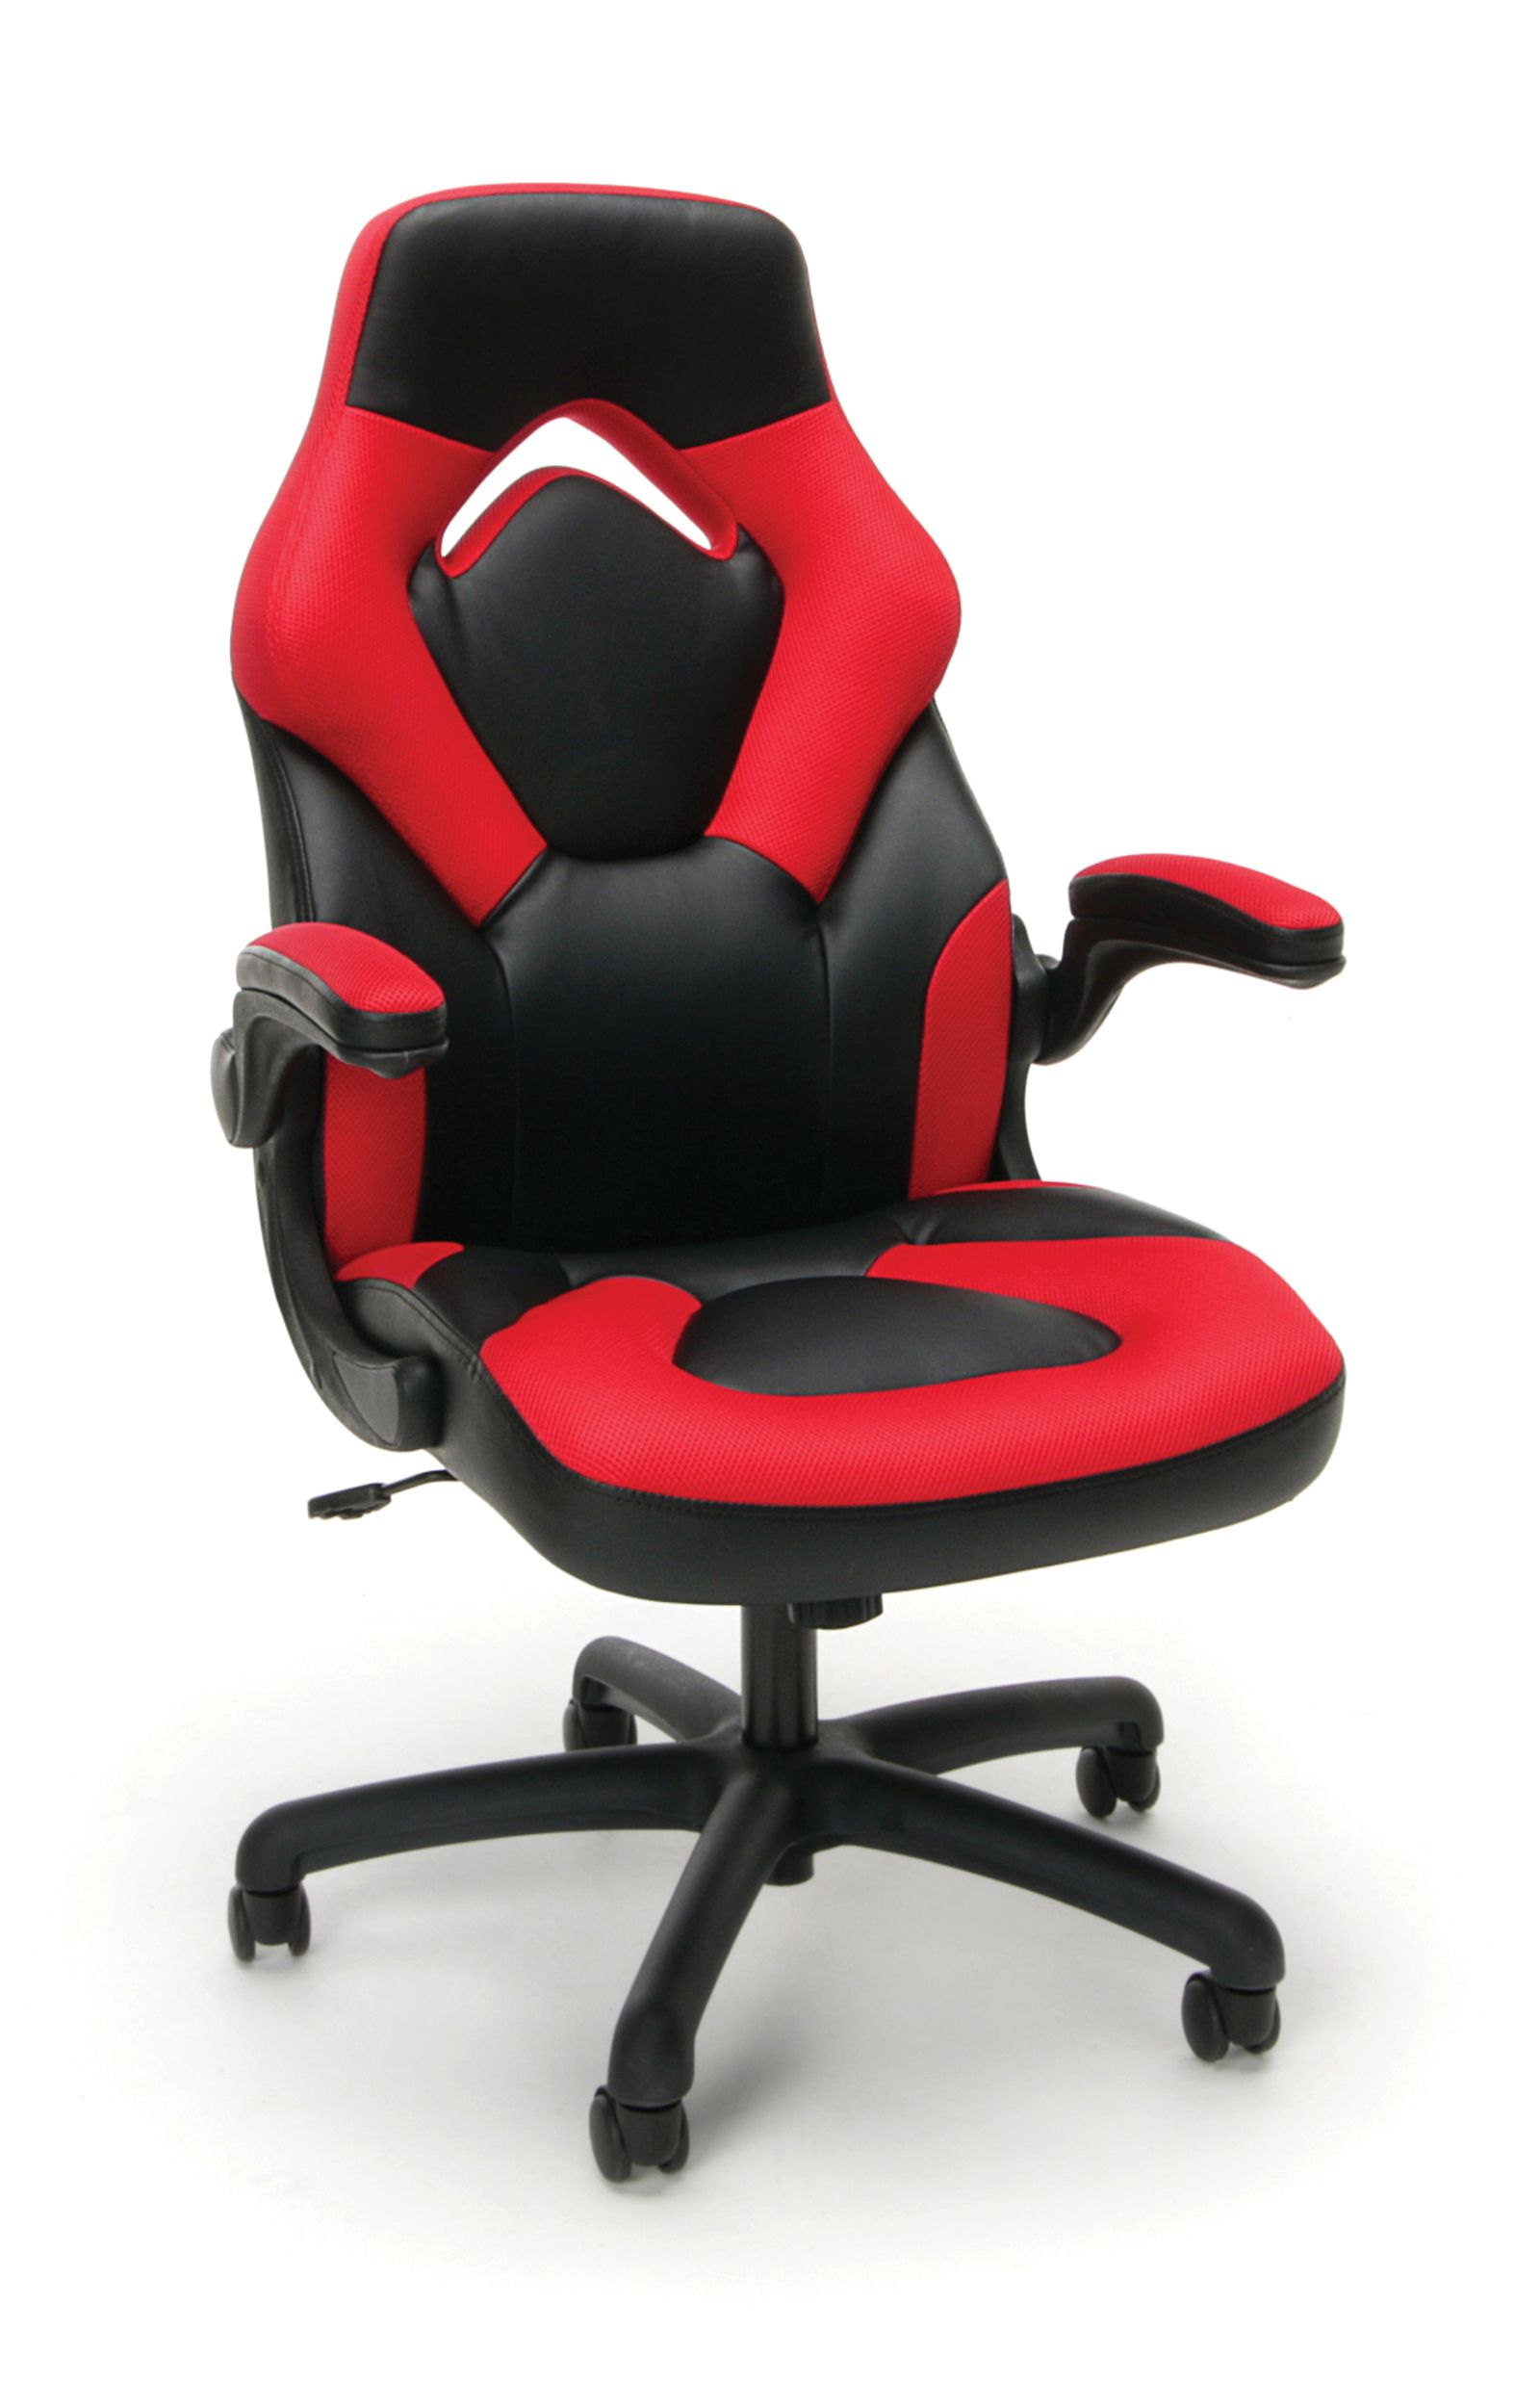 OFM Gaming Chair, Red Staples Gaming chair, Ofm, Best